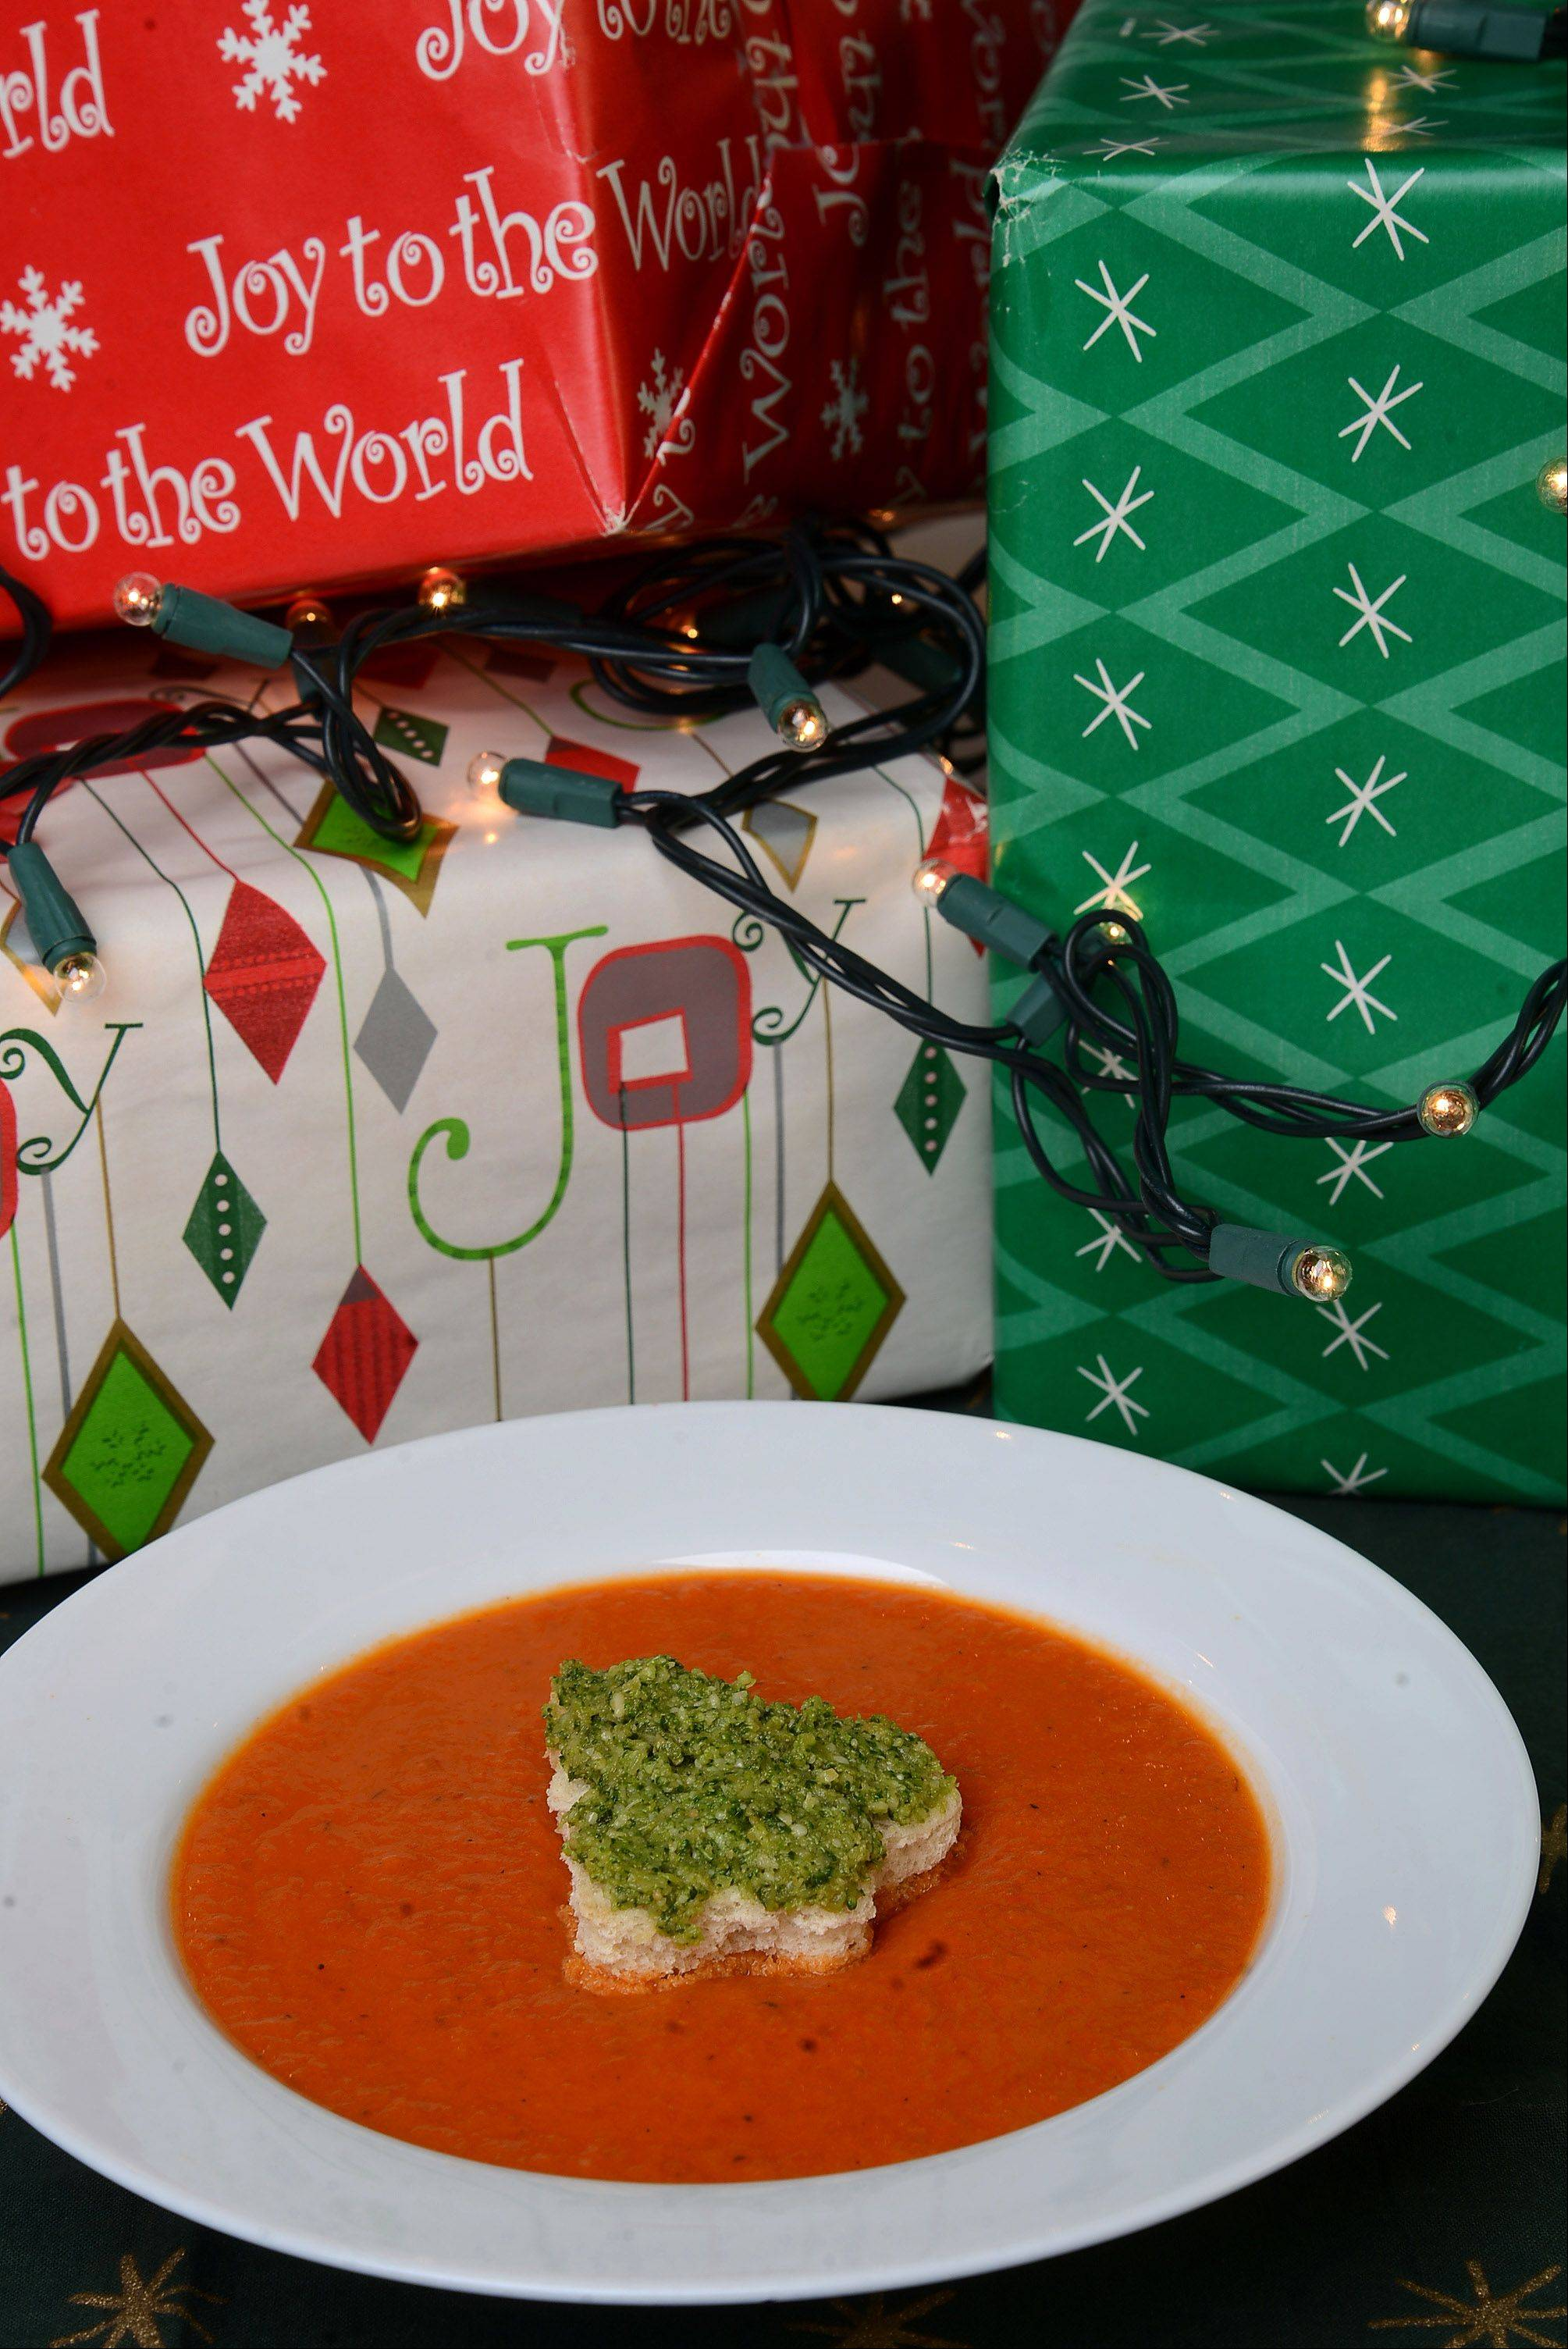 Broccoli pesto Christmas tree croutons make roasted red pepper soup extra festive.